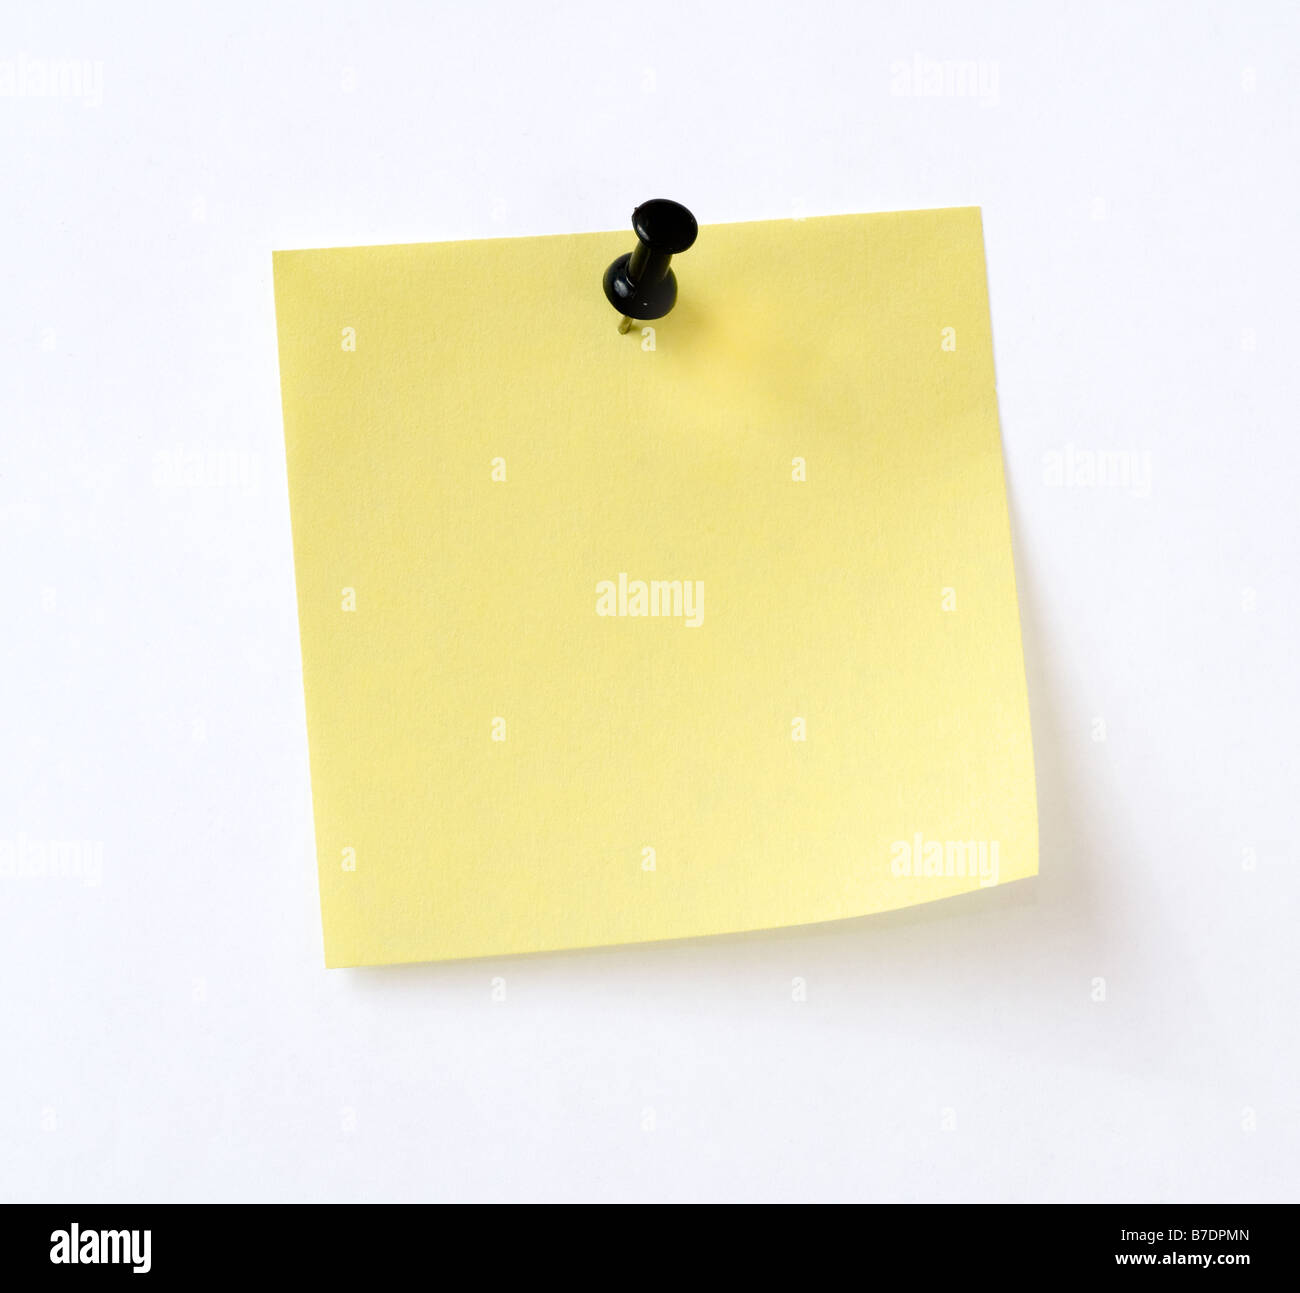 yellow note with black pin over white background - Stock Image